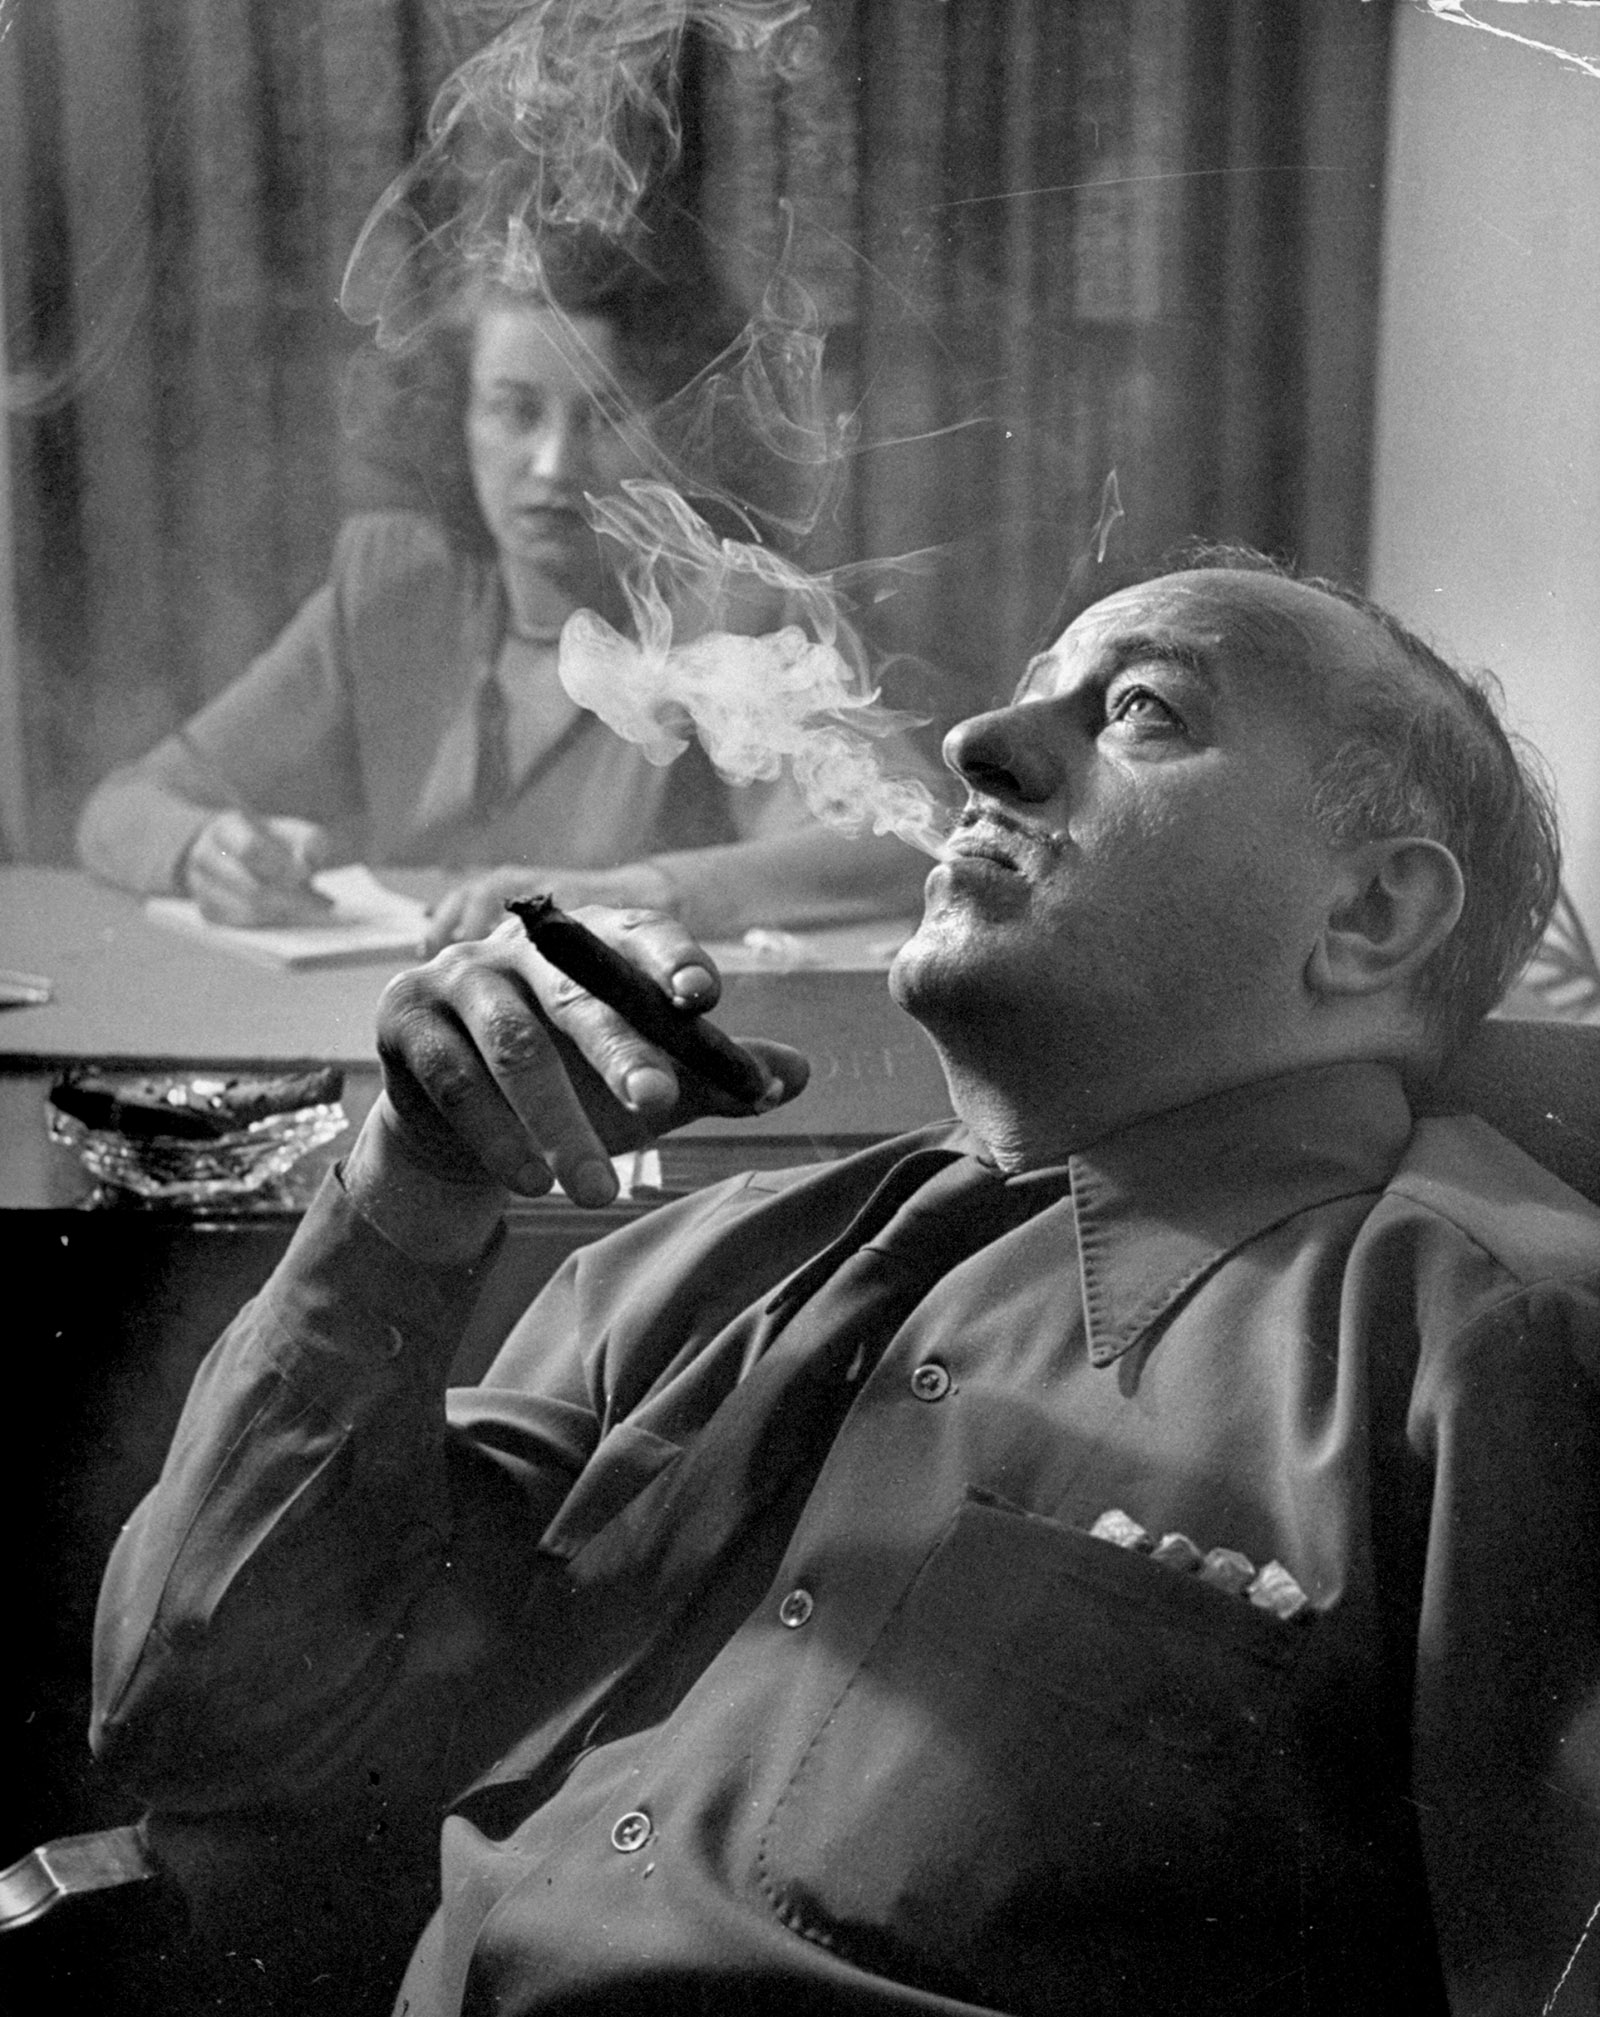 Ben Hecht dictating dialogue for his film Specter of the Rose, circa 1946